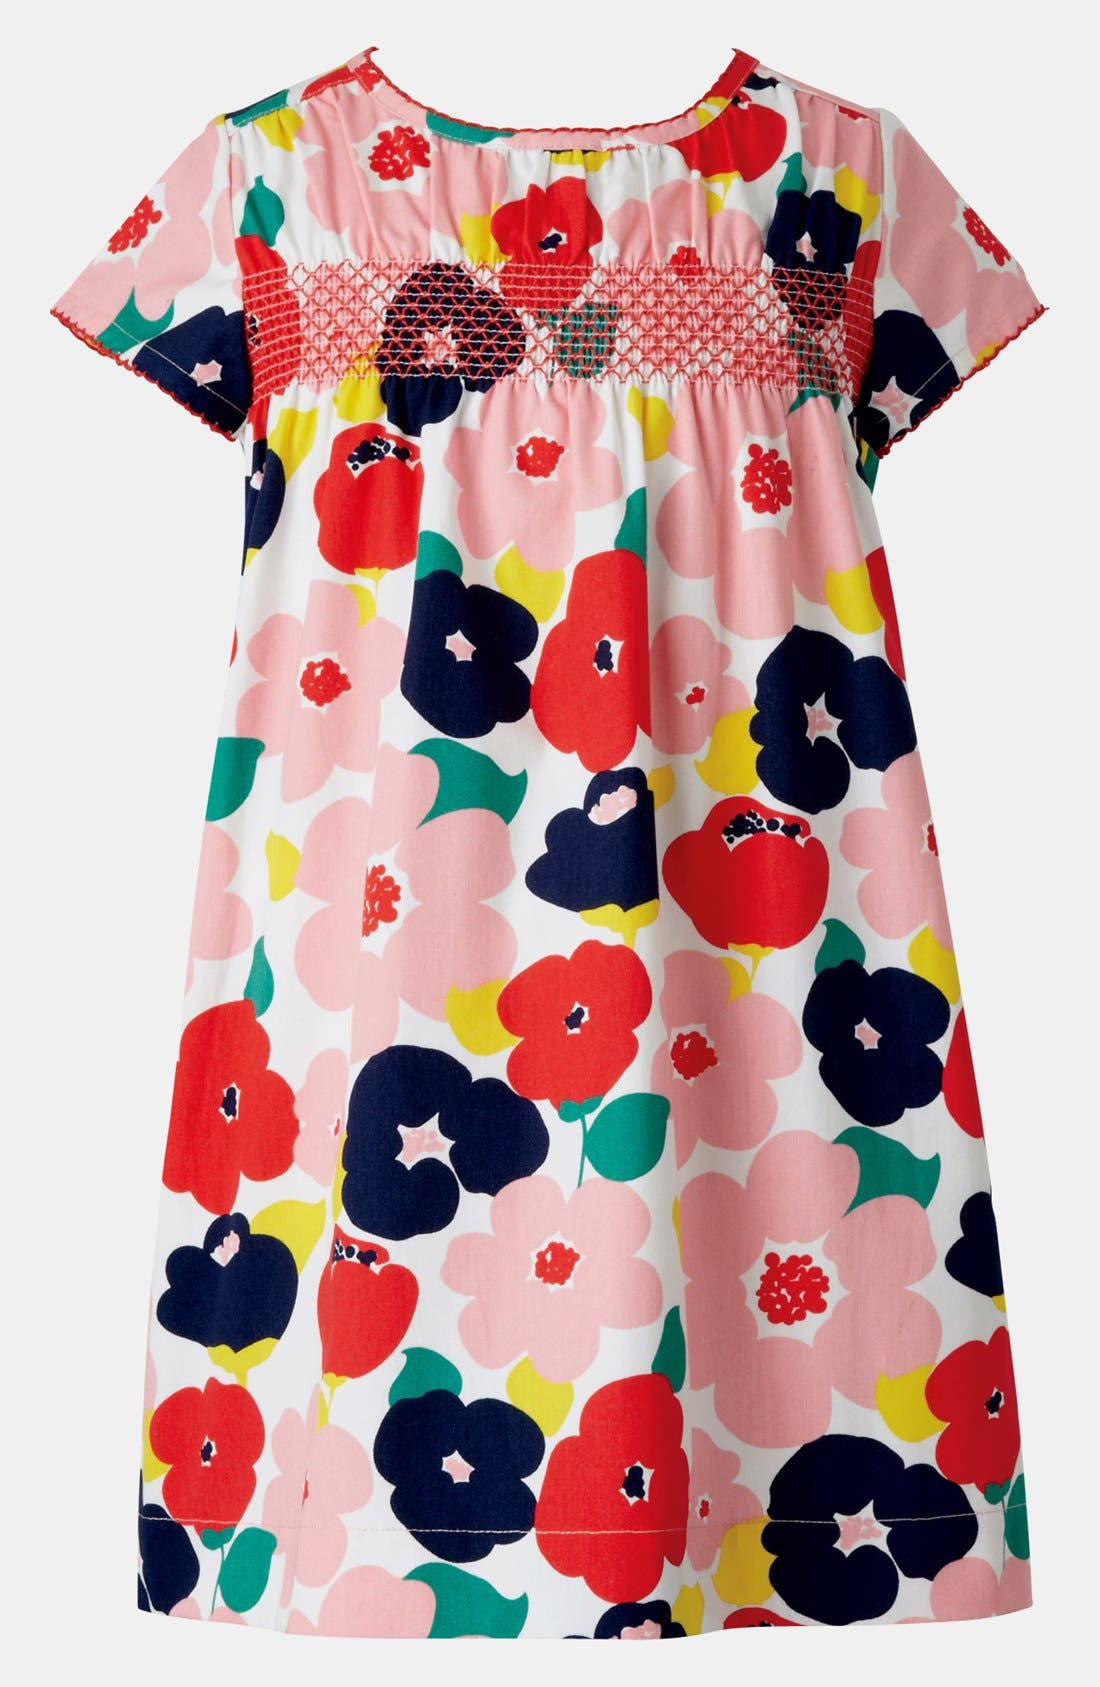 Alternate Image 1 Selected - Mini Boden Smocked Dress (Toddler Girls)